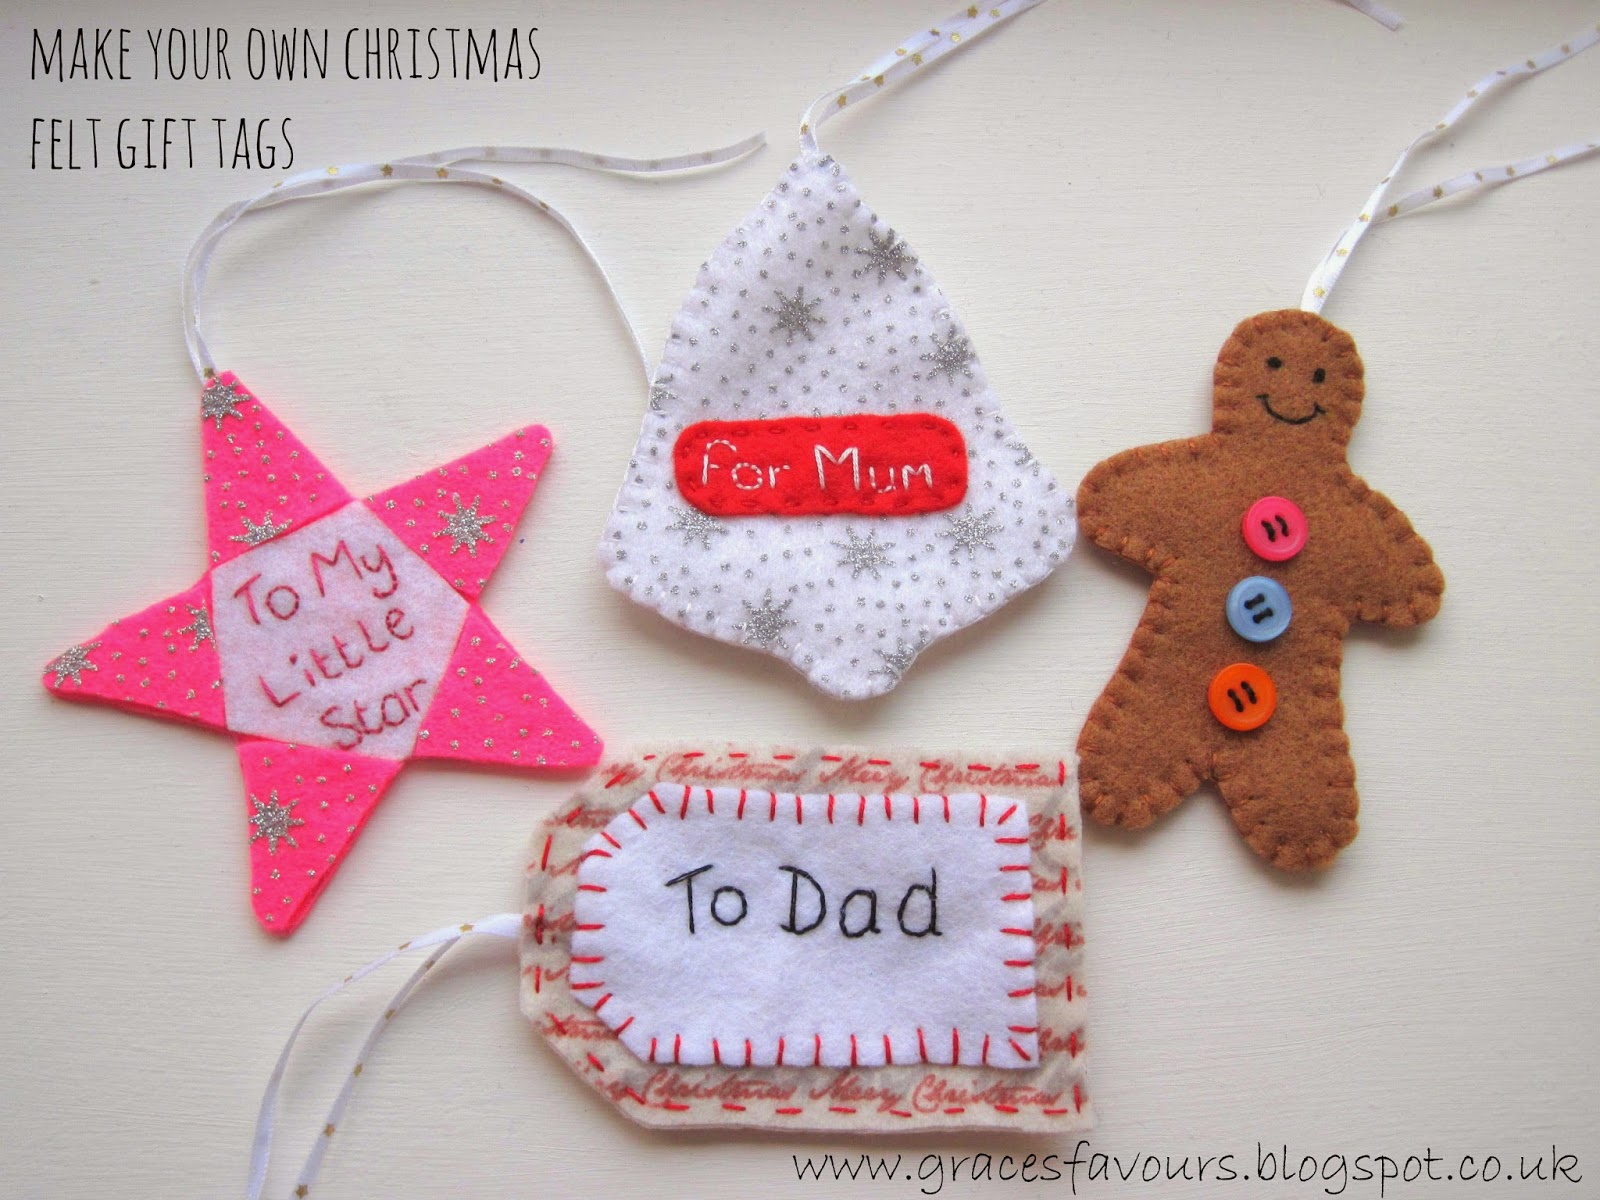 Grace's Favours - Craft Adventures: DIY Tutorial - How to ...